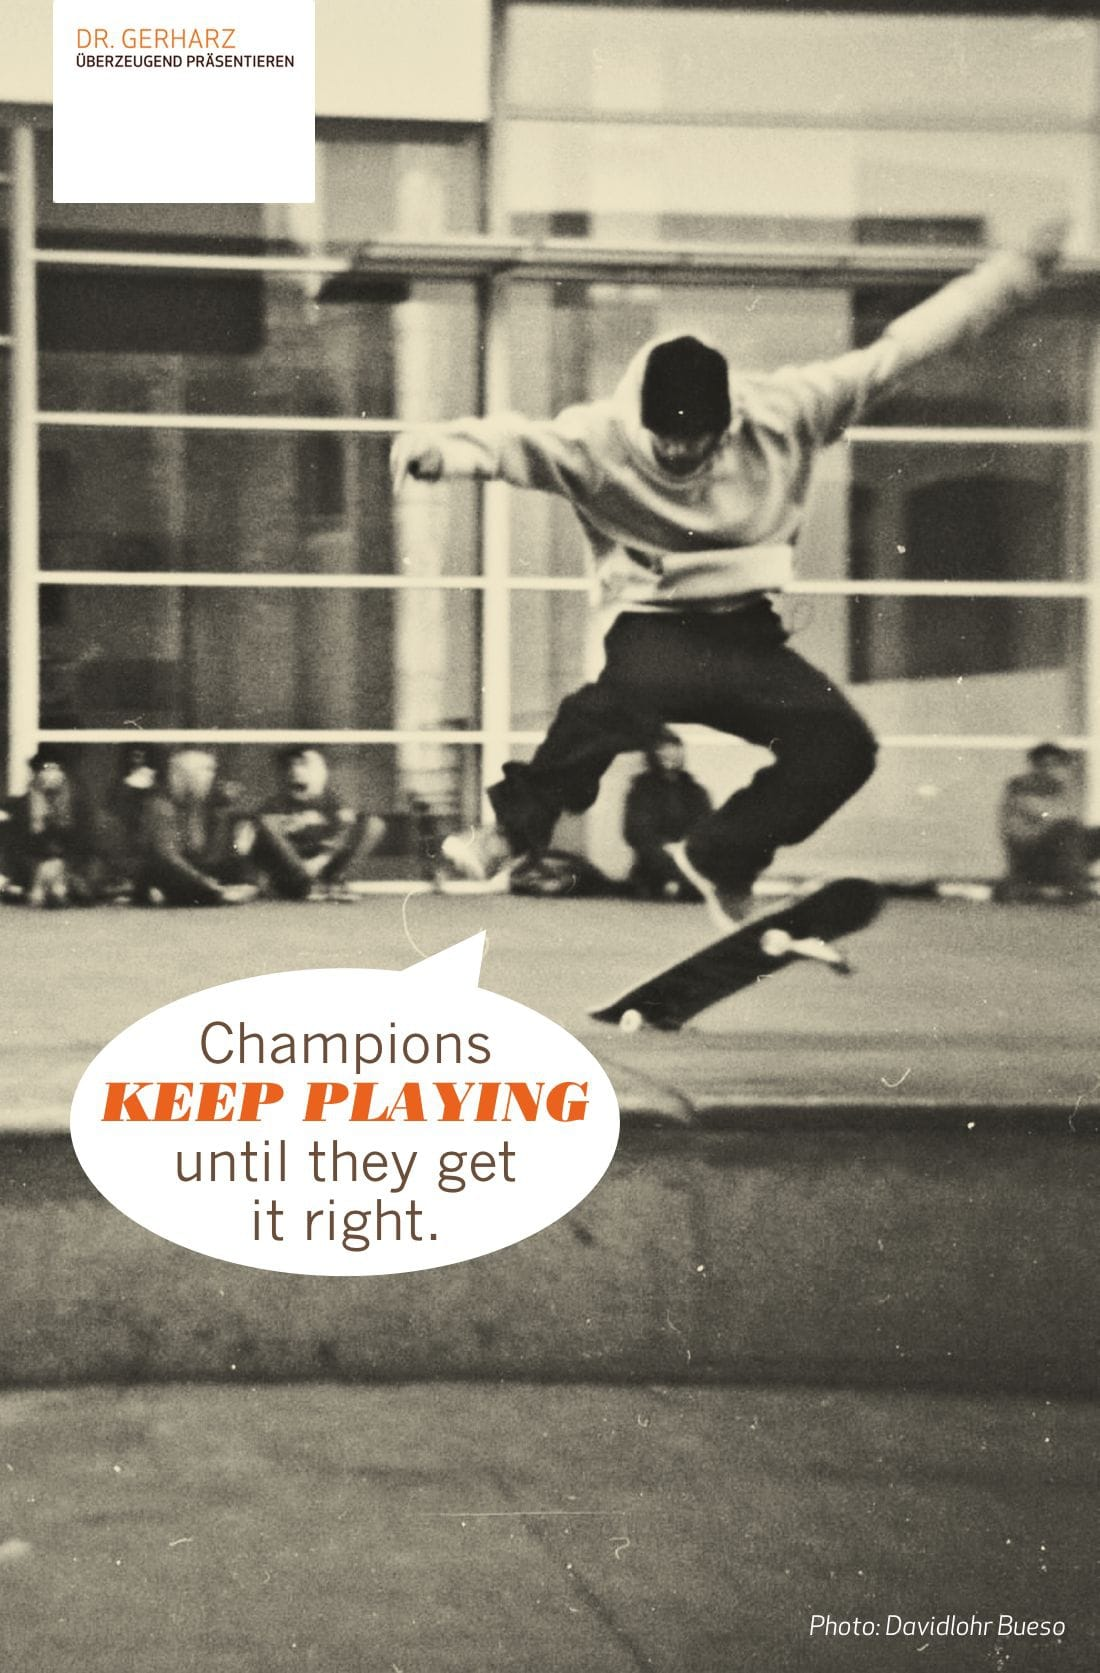 Champions keep playing until they get it right.